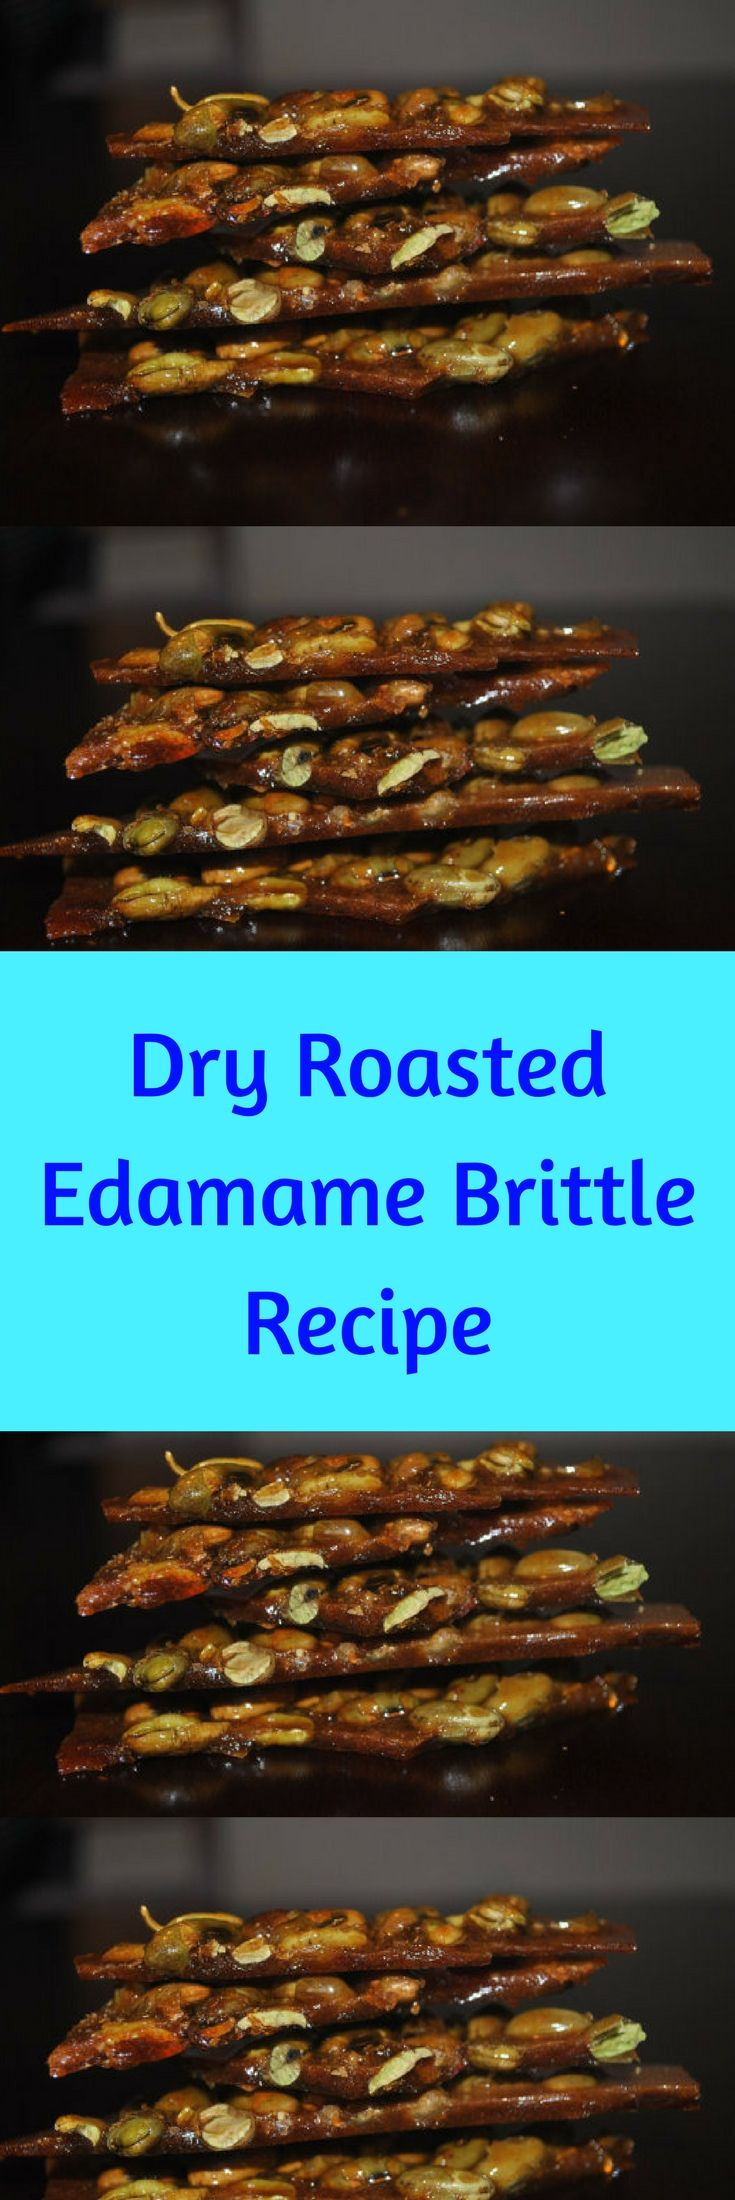 Dry Roasted Edamame Brittle Recipe Pdf Jpg - Candy recipe- Sweet and Savory- Edible Food Gift- Holiday Recipe- Hostess Gift.Sweet, salty, crunchy and spicy all wrapped up into one brittle. Great as a hostess gift, holiday gift, or a great gift for a brittle candy lover.  #ad #recipe #food